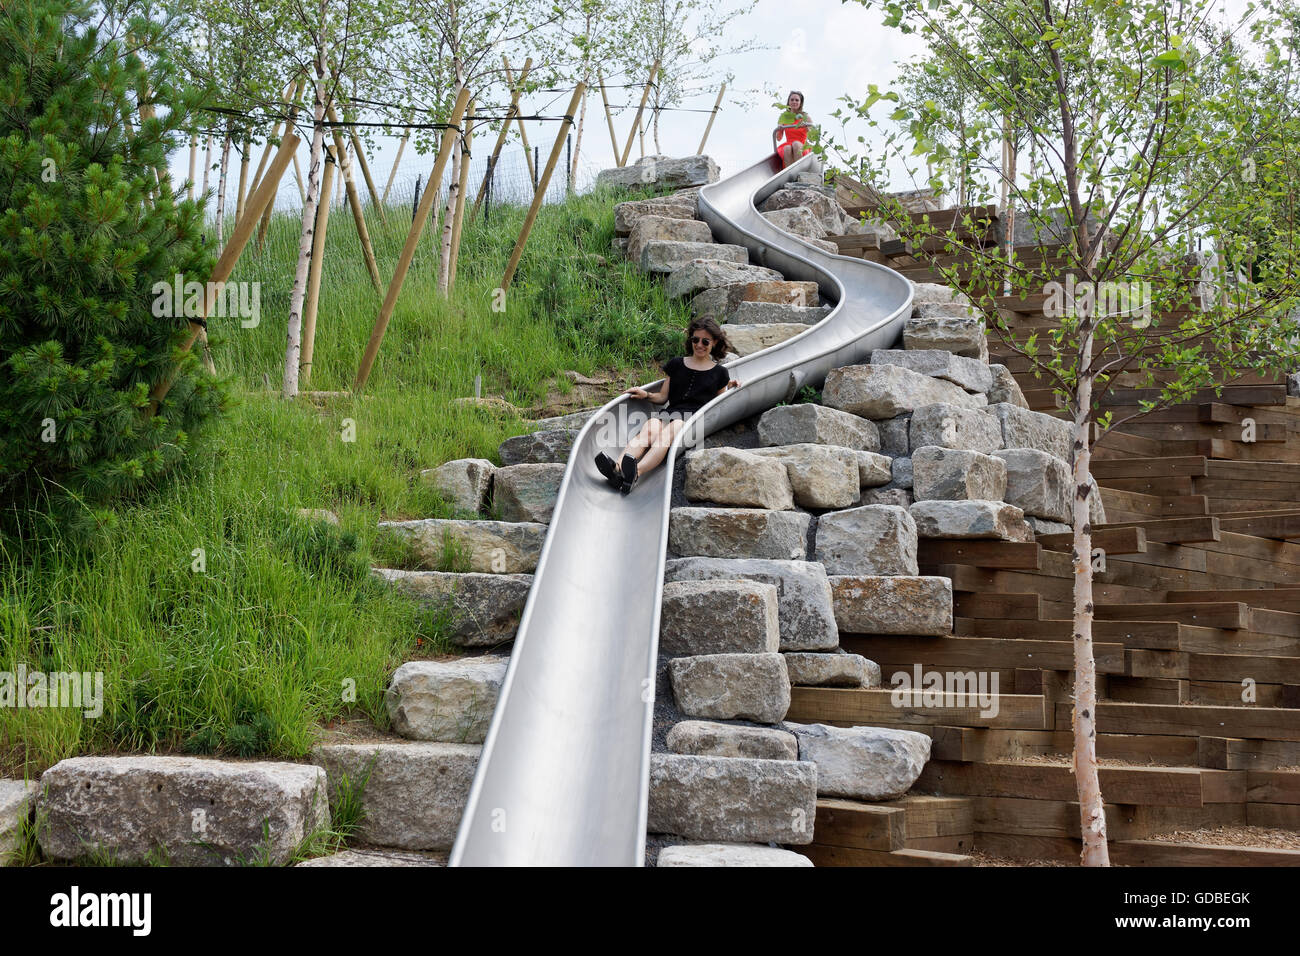 Slide Hill on Governors Island, at 36 feet tall, is home to four slides, including the longest slide in New York City. Stock Photo